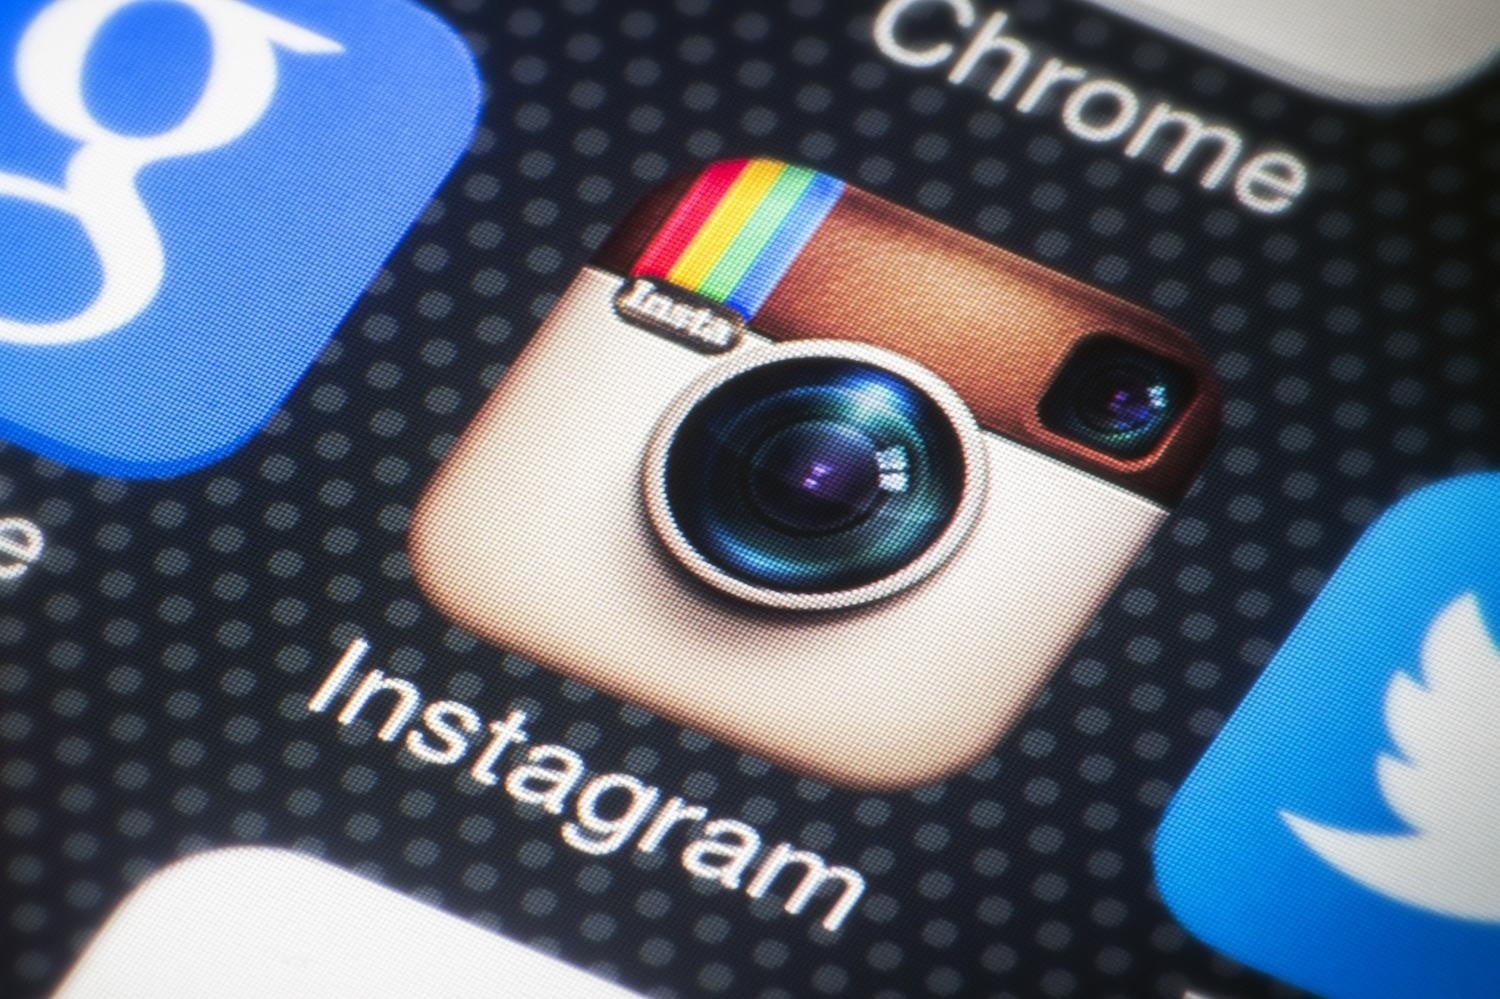 Instagram Begins Trials of In-app Payments for Faster Shopping